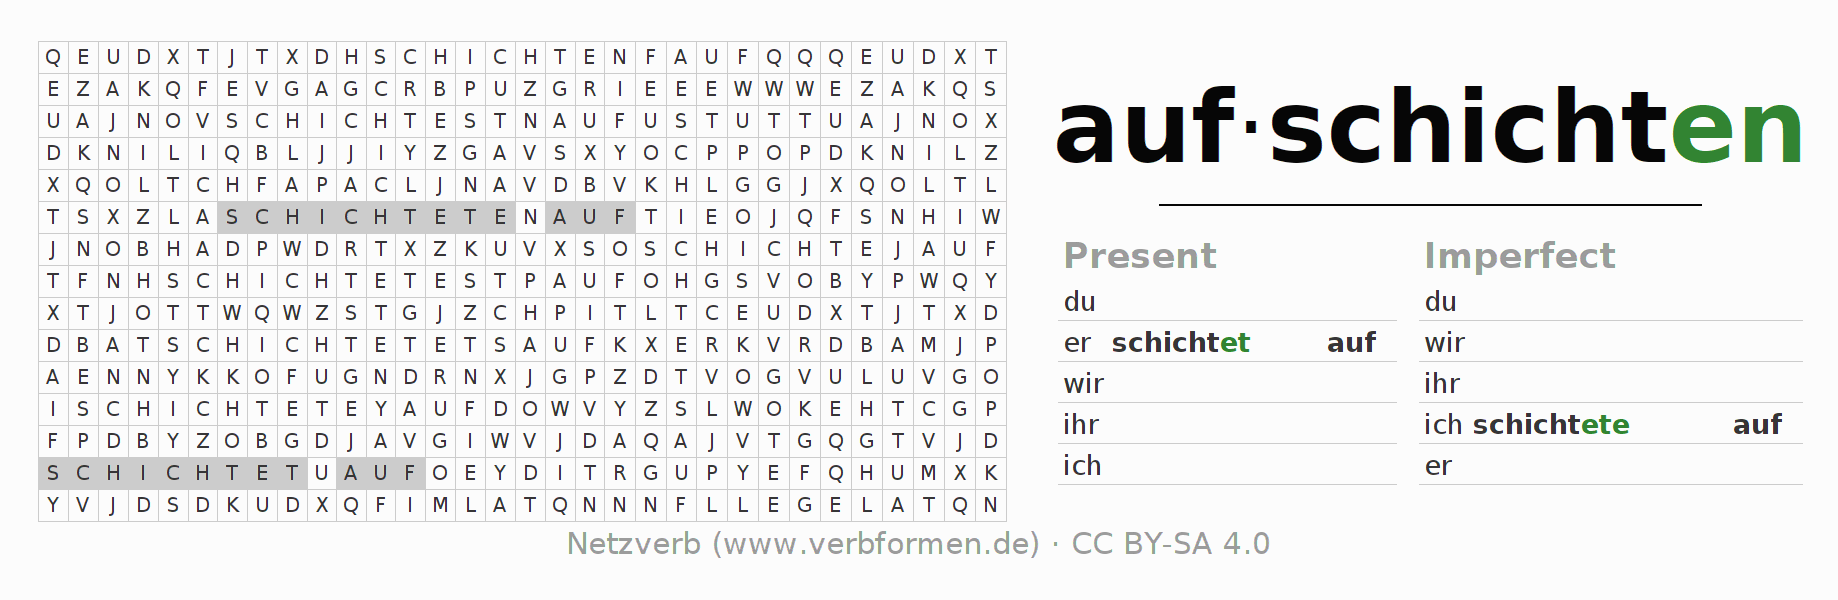 Word search puzzle for the conjugation of the verb aufschichten